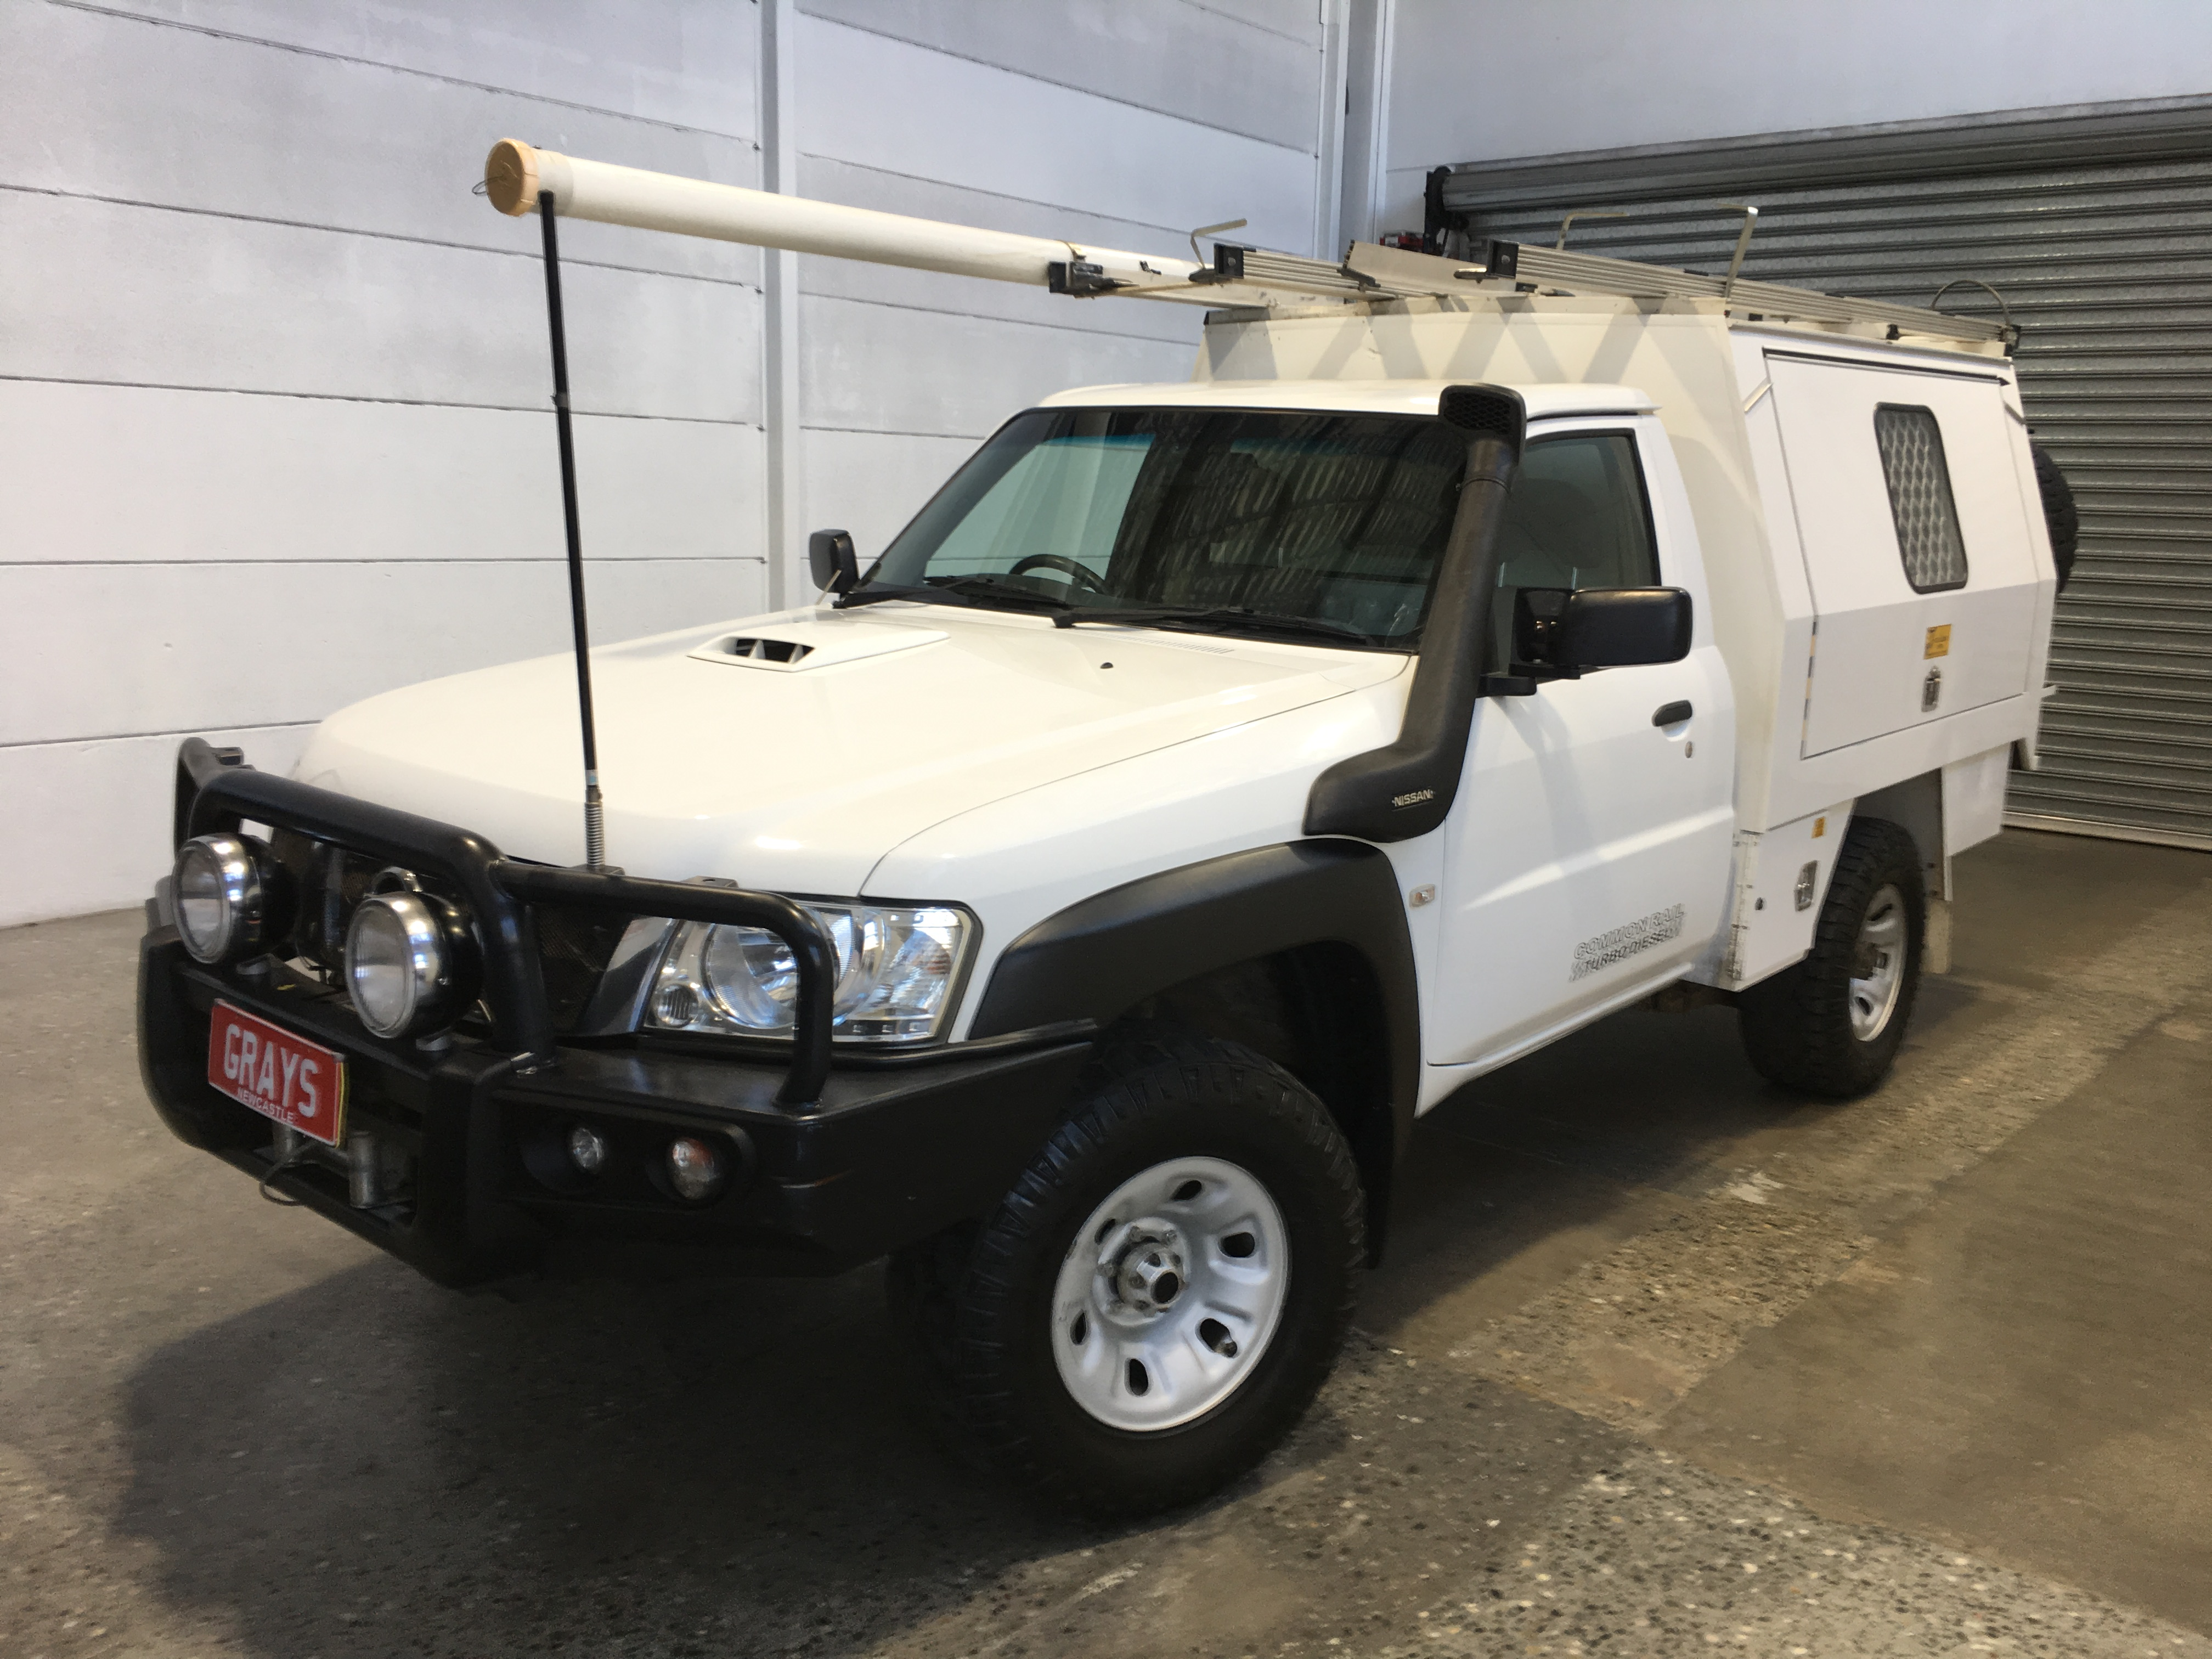 2014 Nissan Patrol DX (4x4) GU Turbo Diesel Manual Cab Chassis